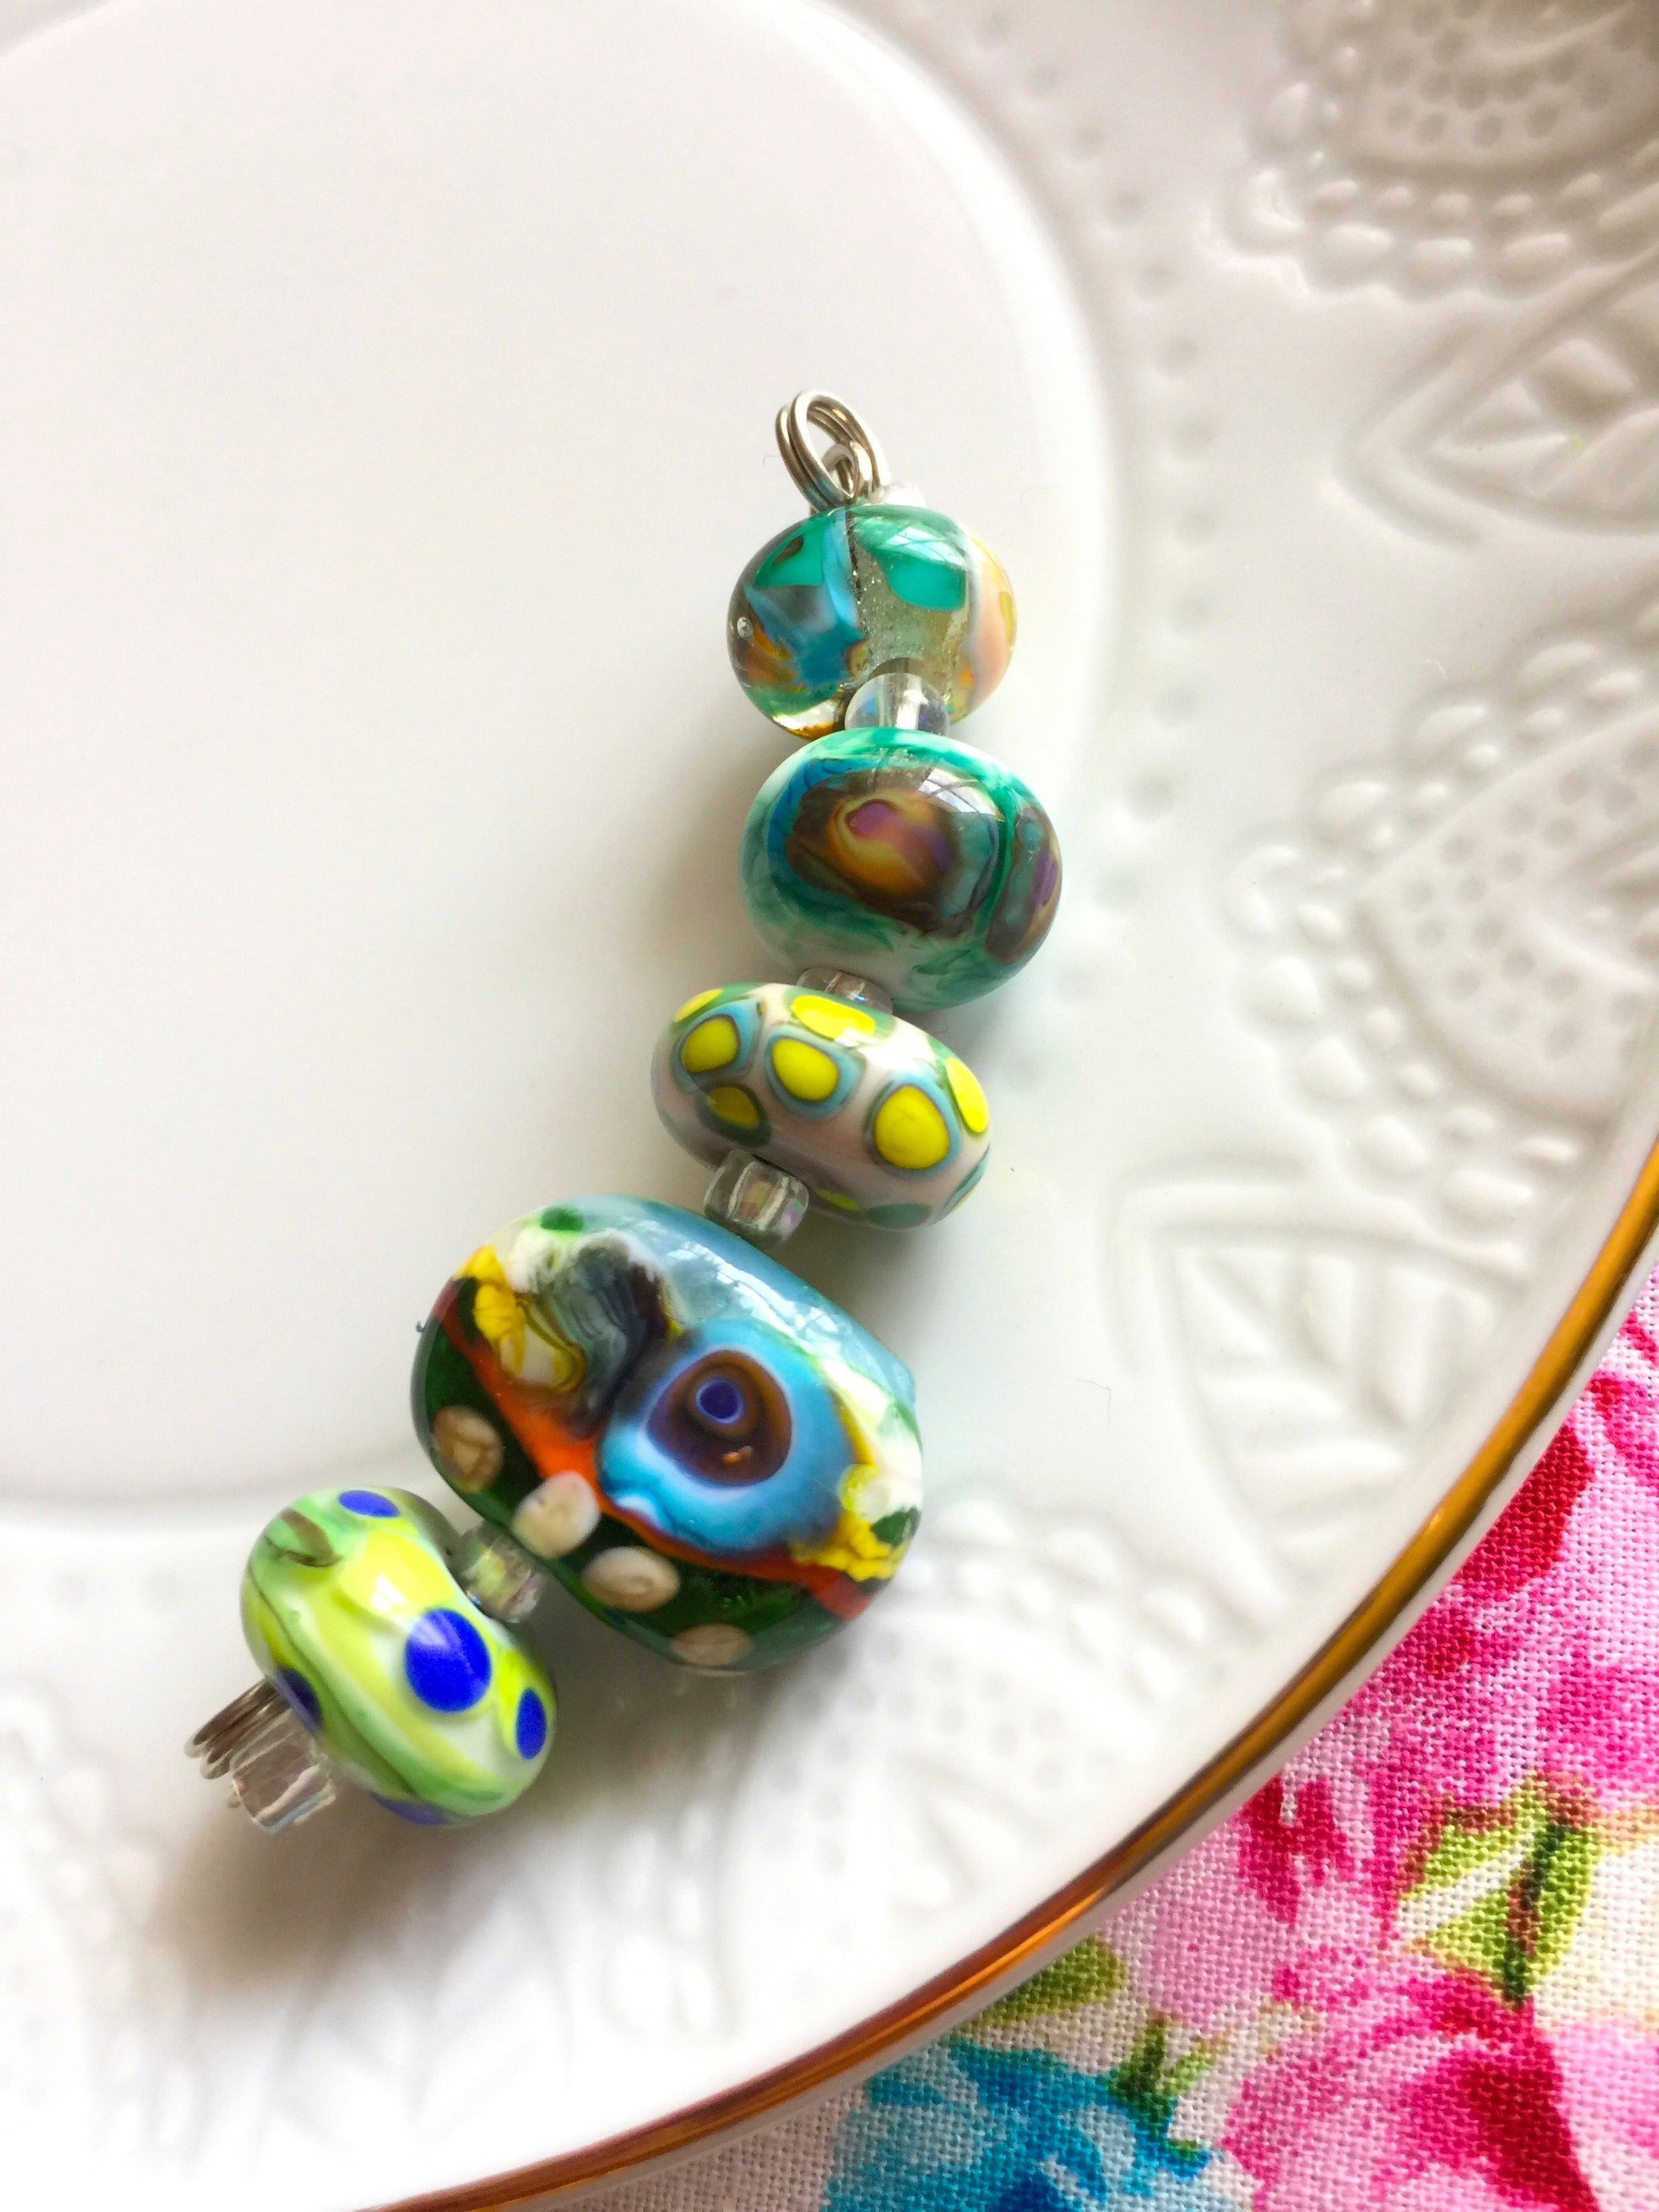 Set of 5 Colorful Handcrafted Lampwork Glass Beads with Bright Swirls and stripes in fun summer colors